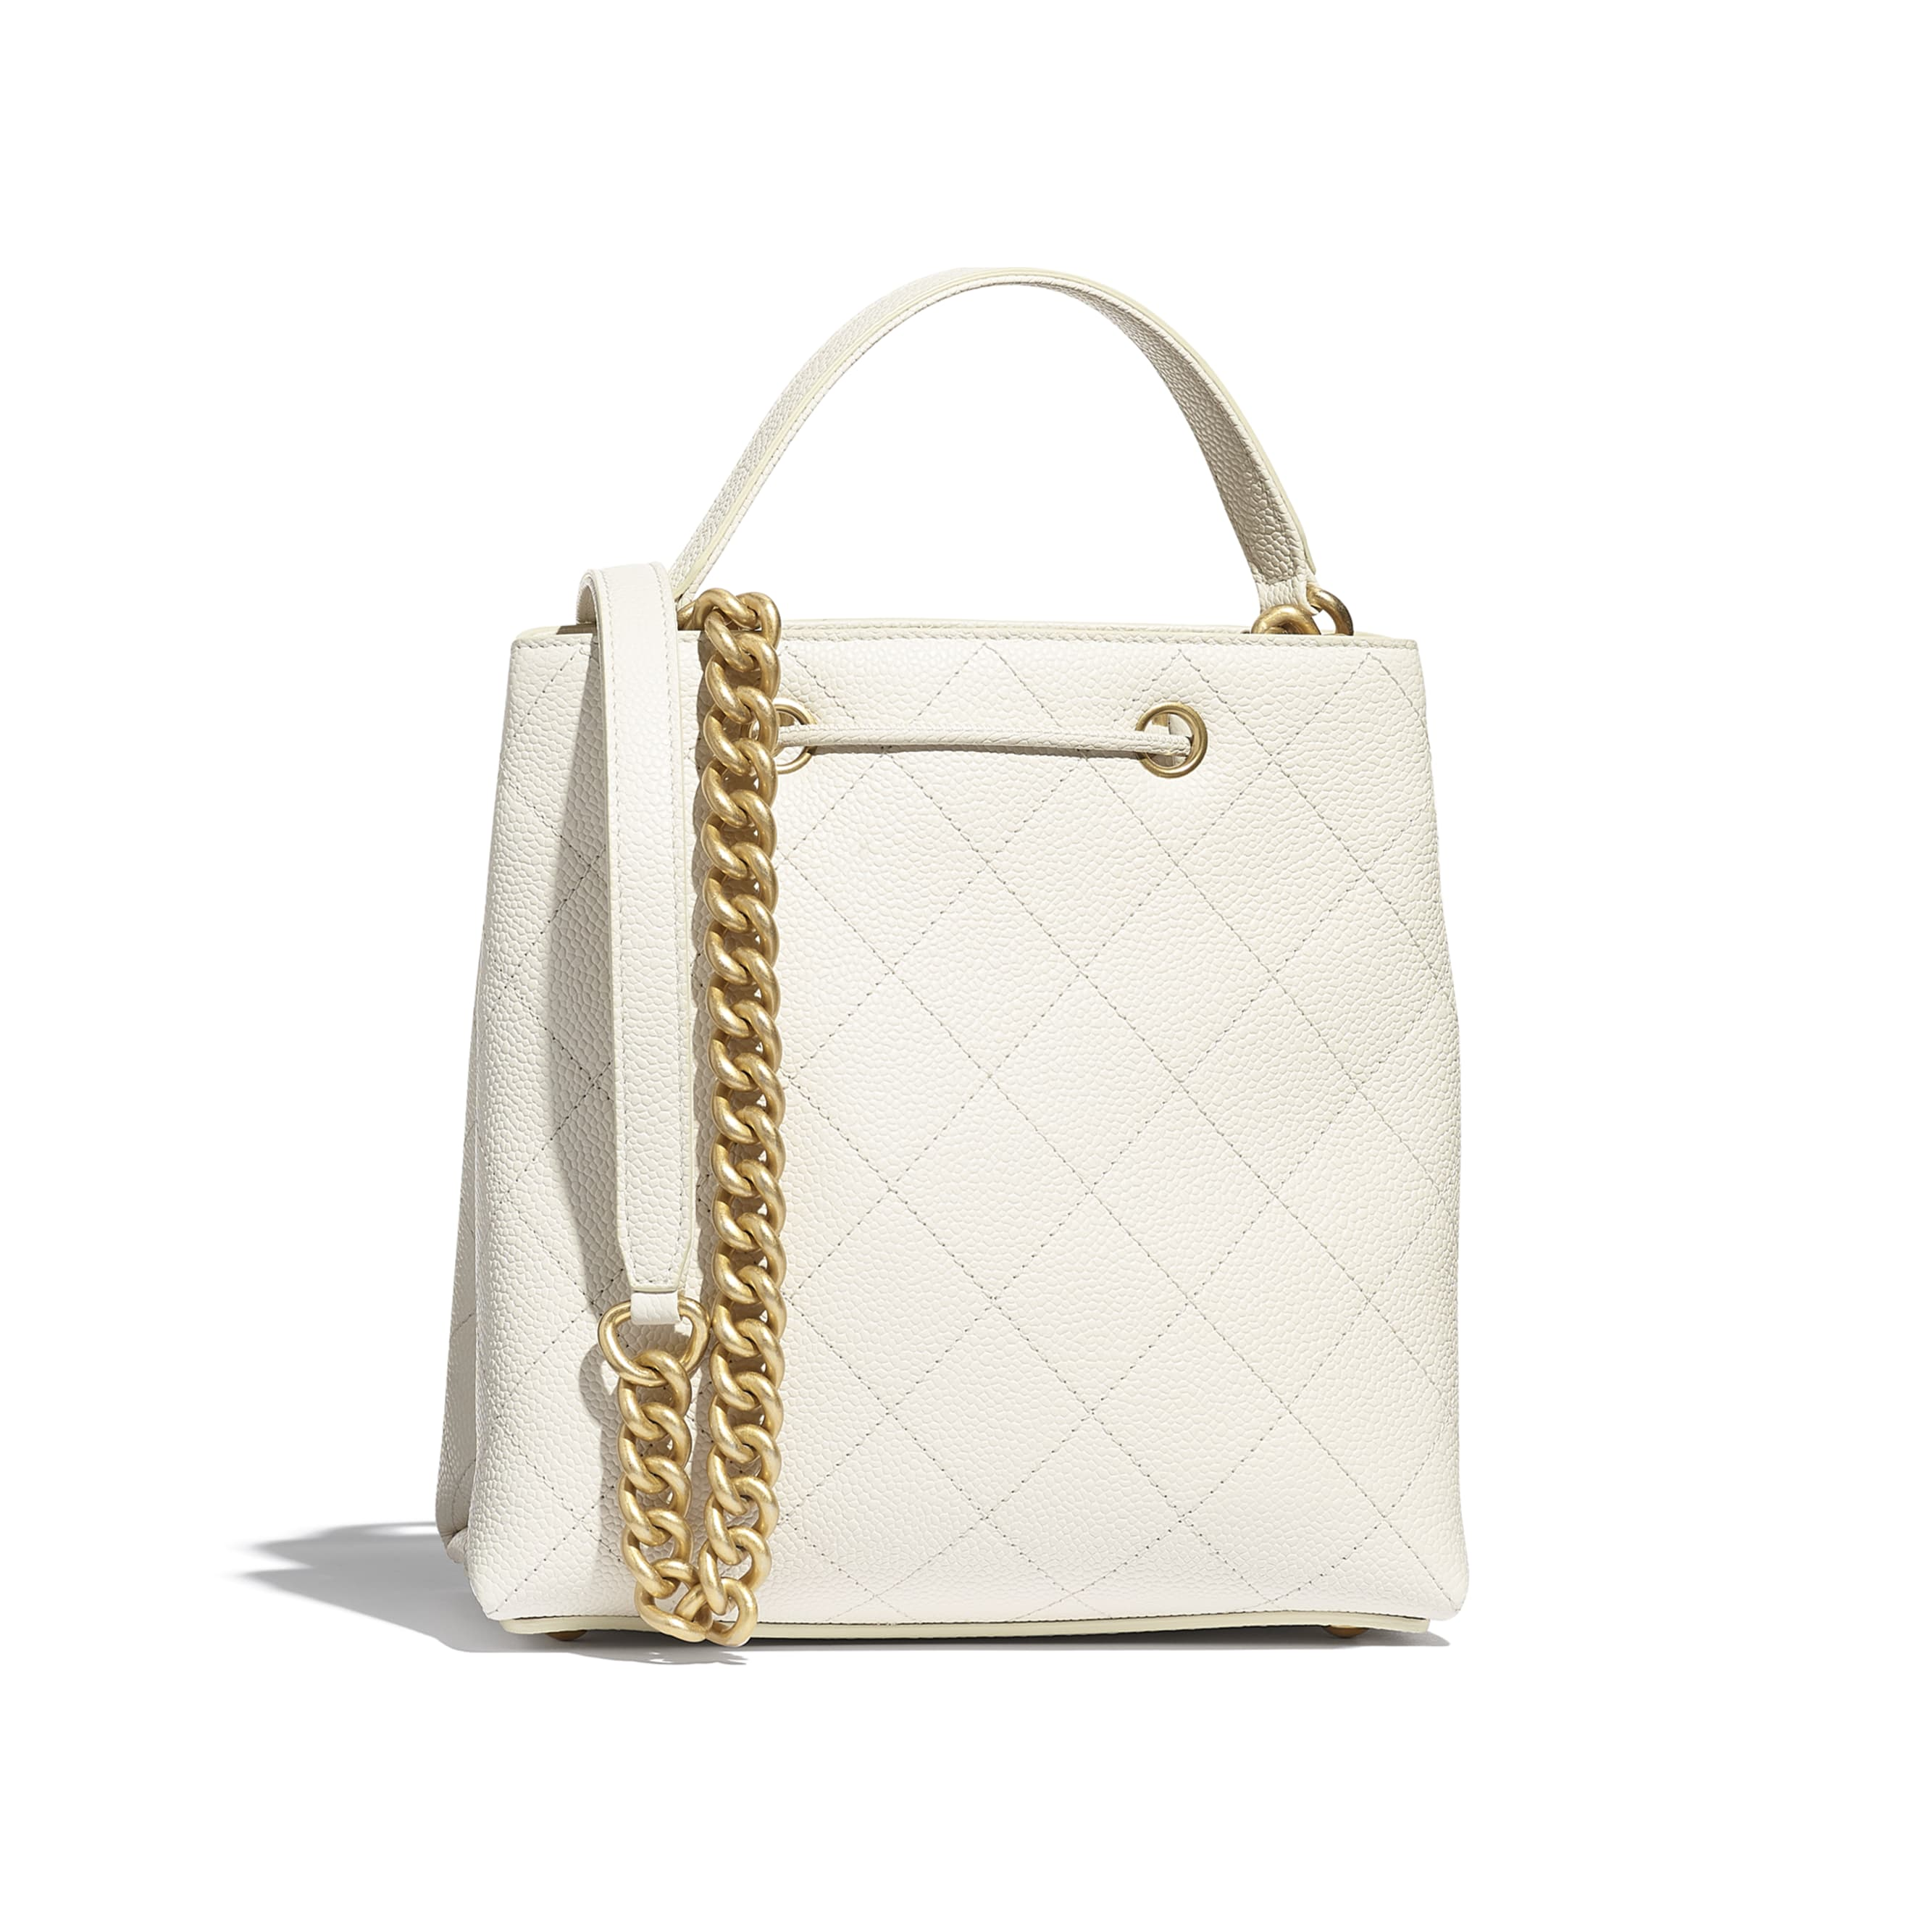 Drawstring Bag - White - Grained Calfskin & Gold-Tone Metal - CHANEL - Alternative view - see standard sized version